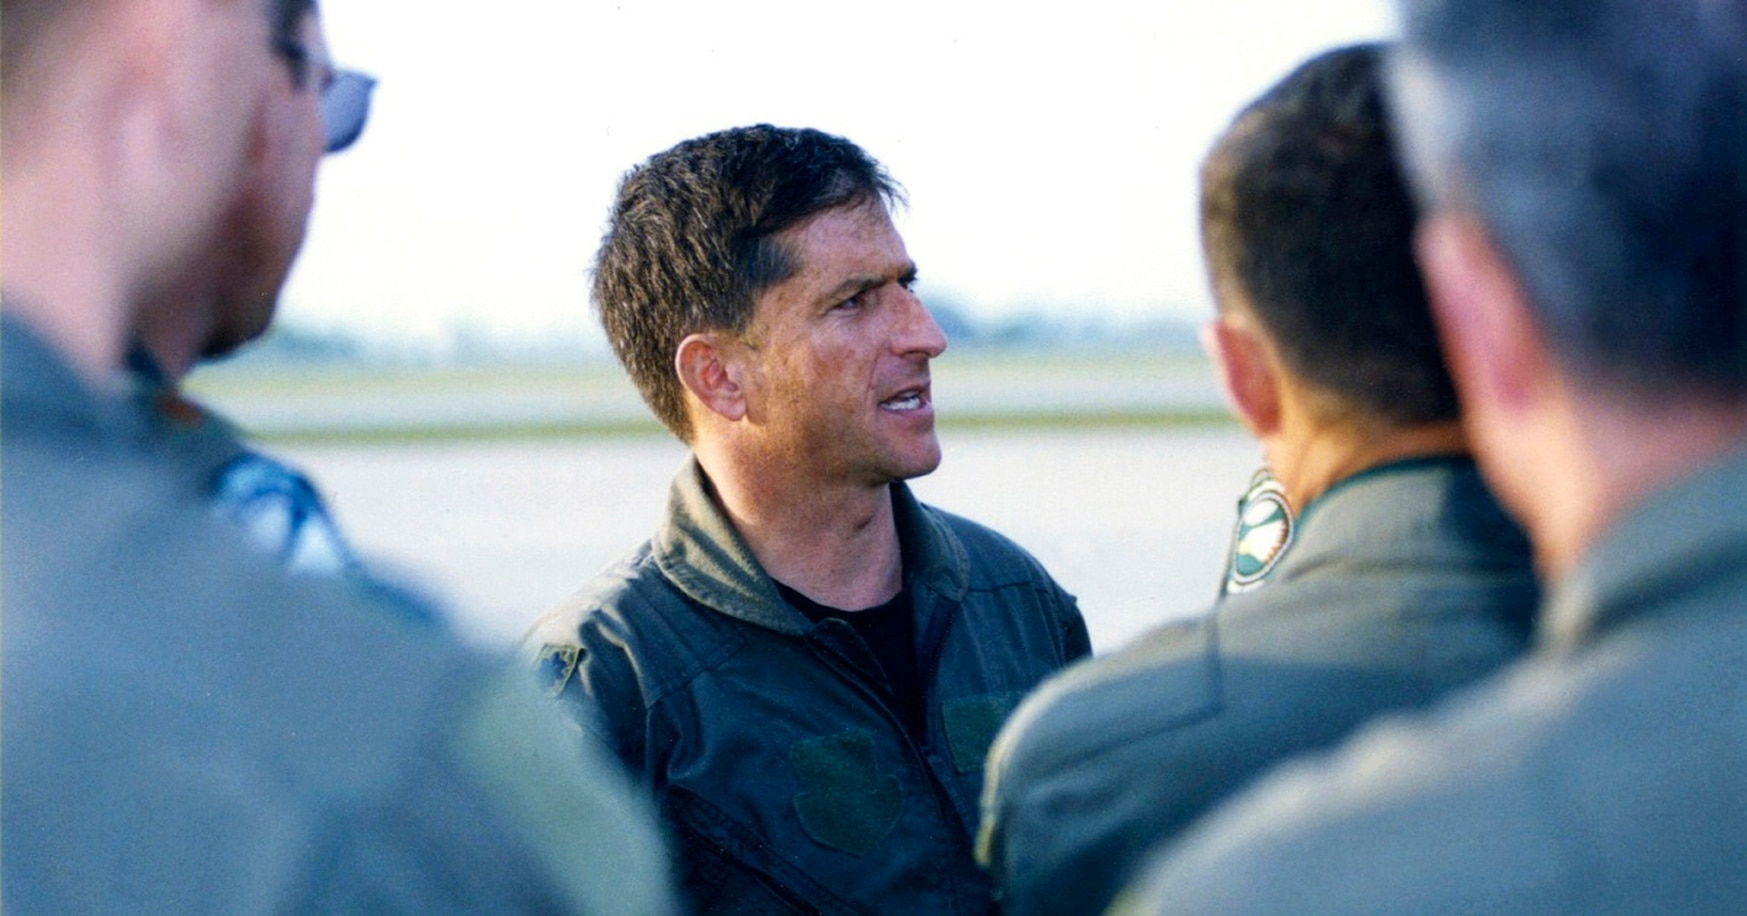 Lt. Col. Dave Goldfein arrives back at Aviano Air Base, Italy, after his harrowing shoot-down and rescue in Serbia in 1999.